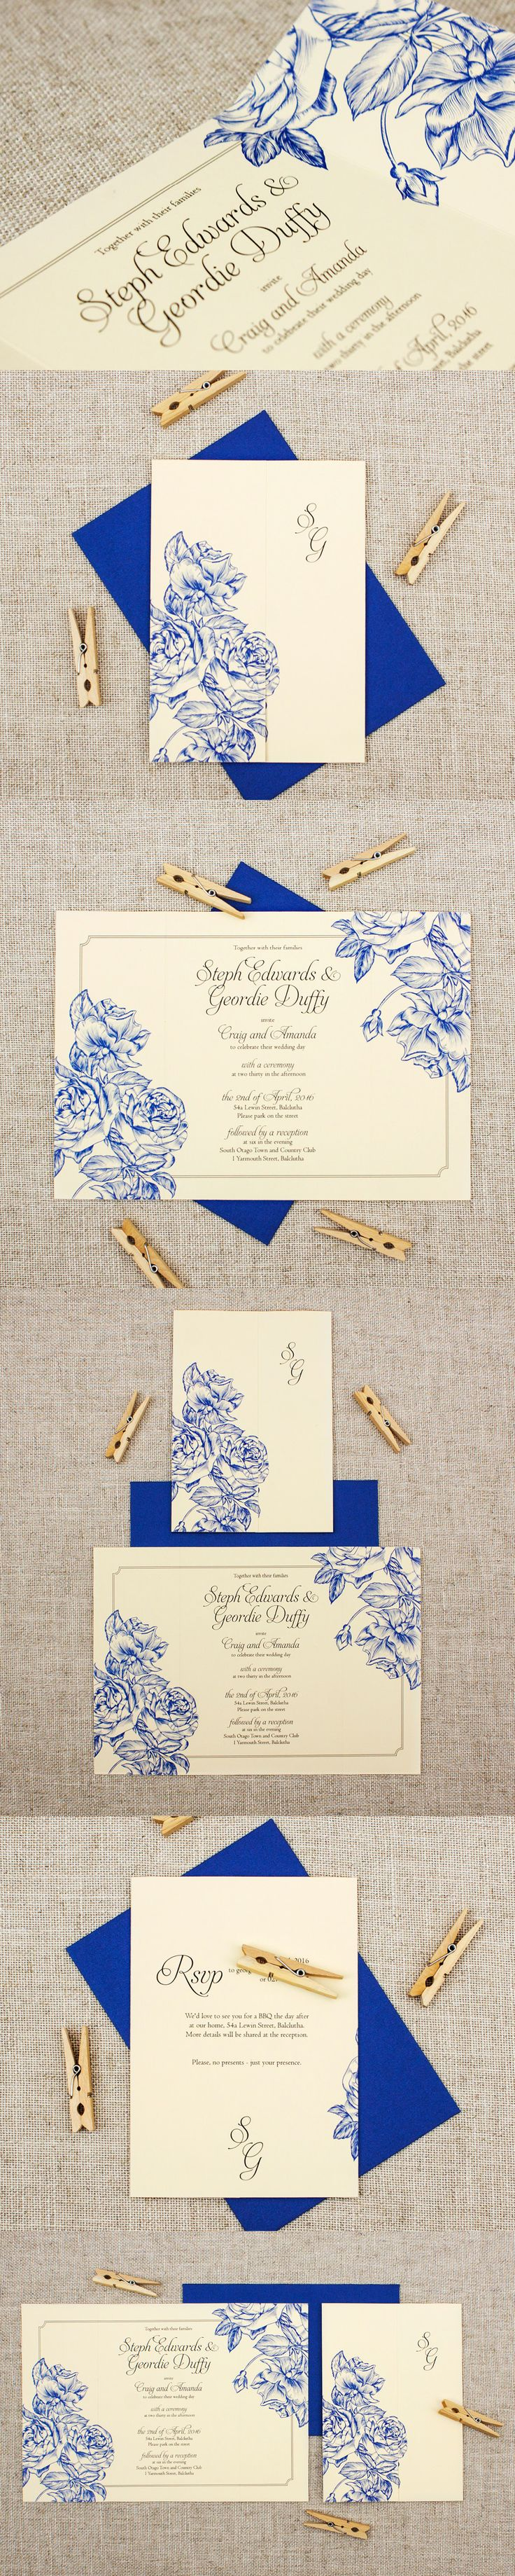 Blue Cream Wedding Invitation With Beautiful Etched Roses